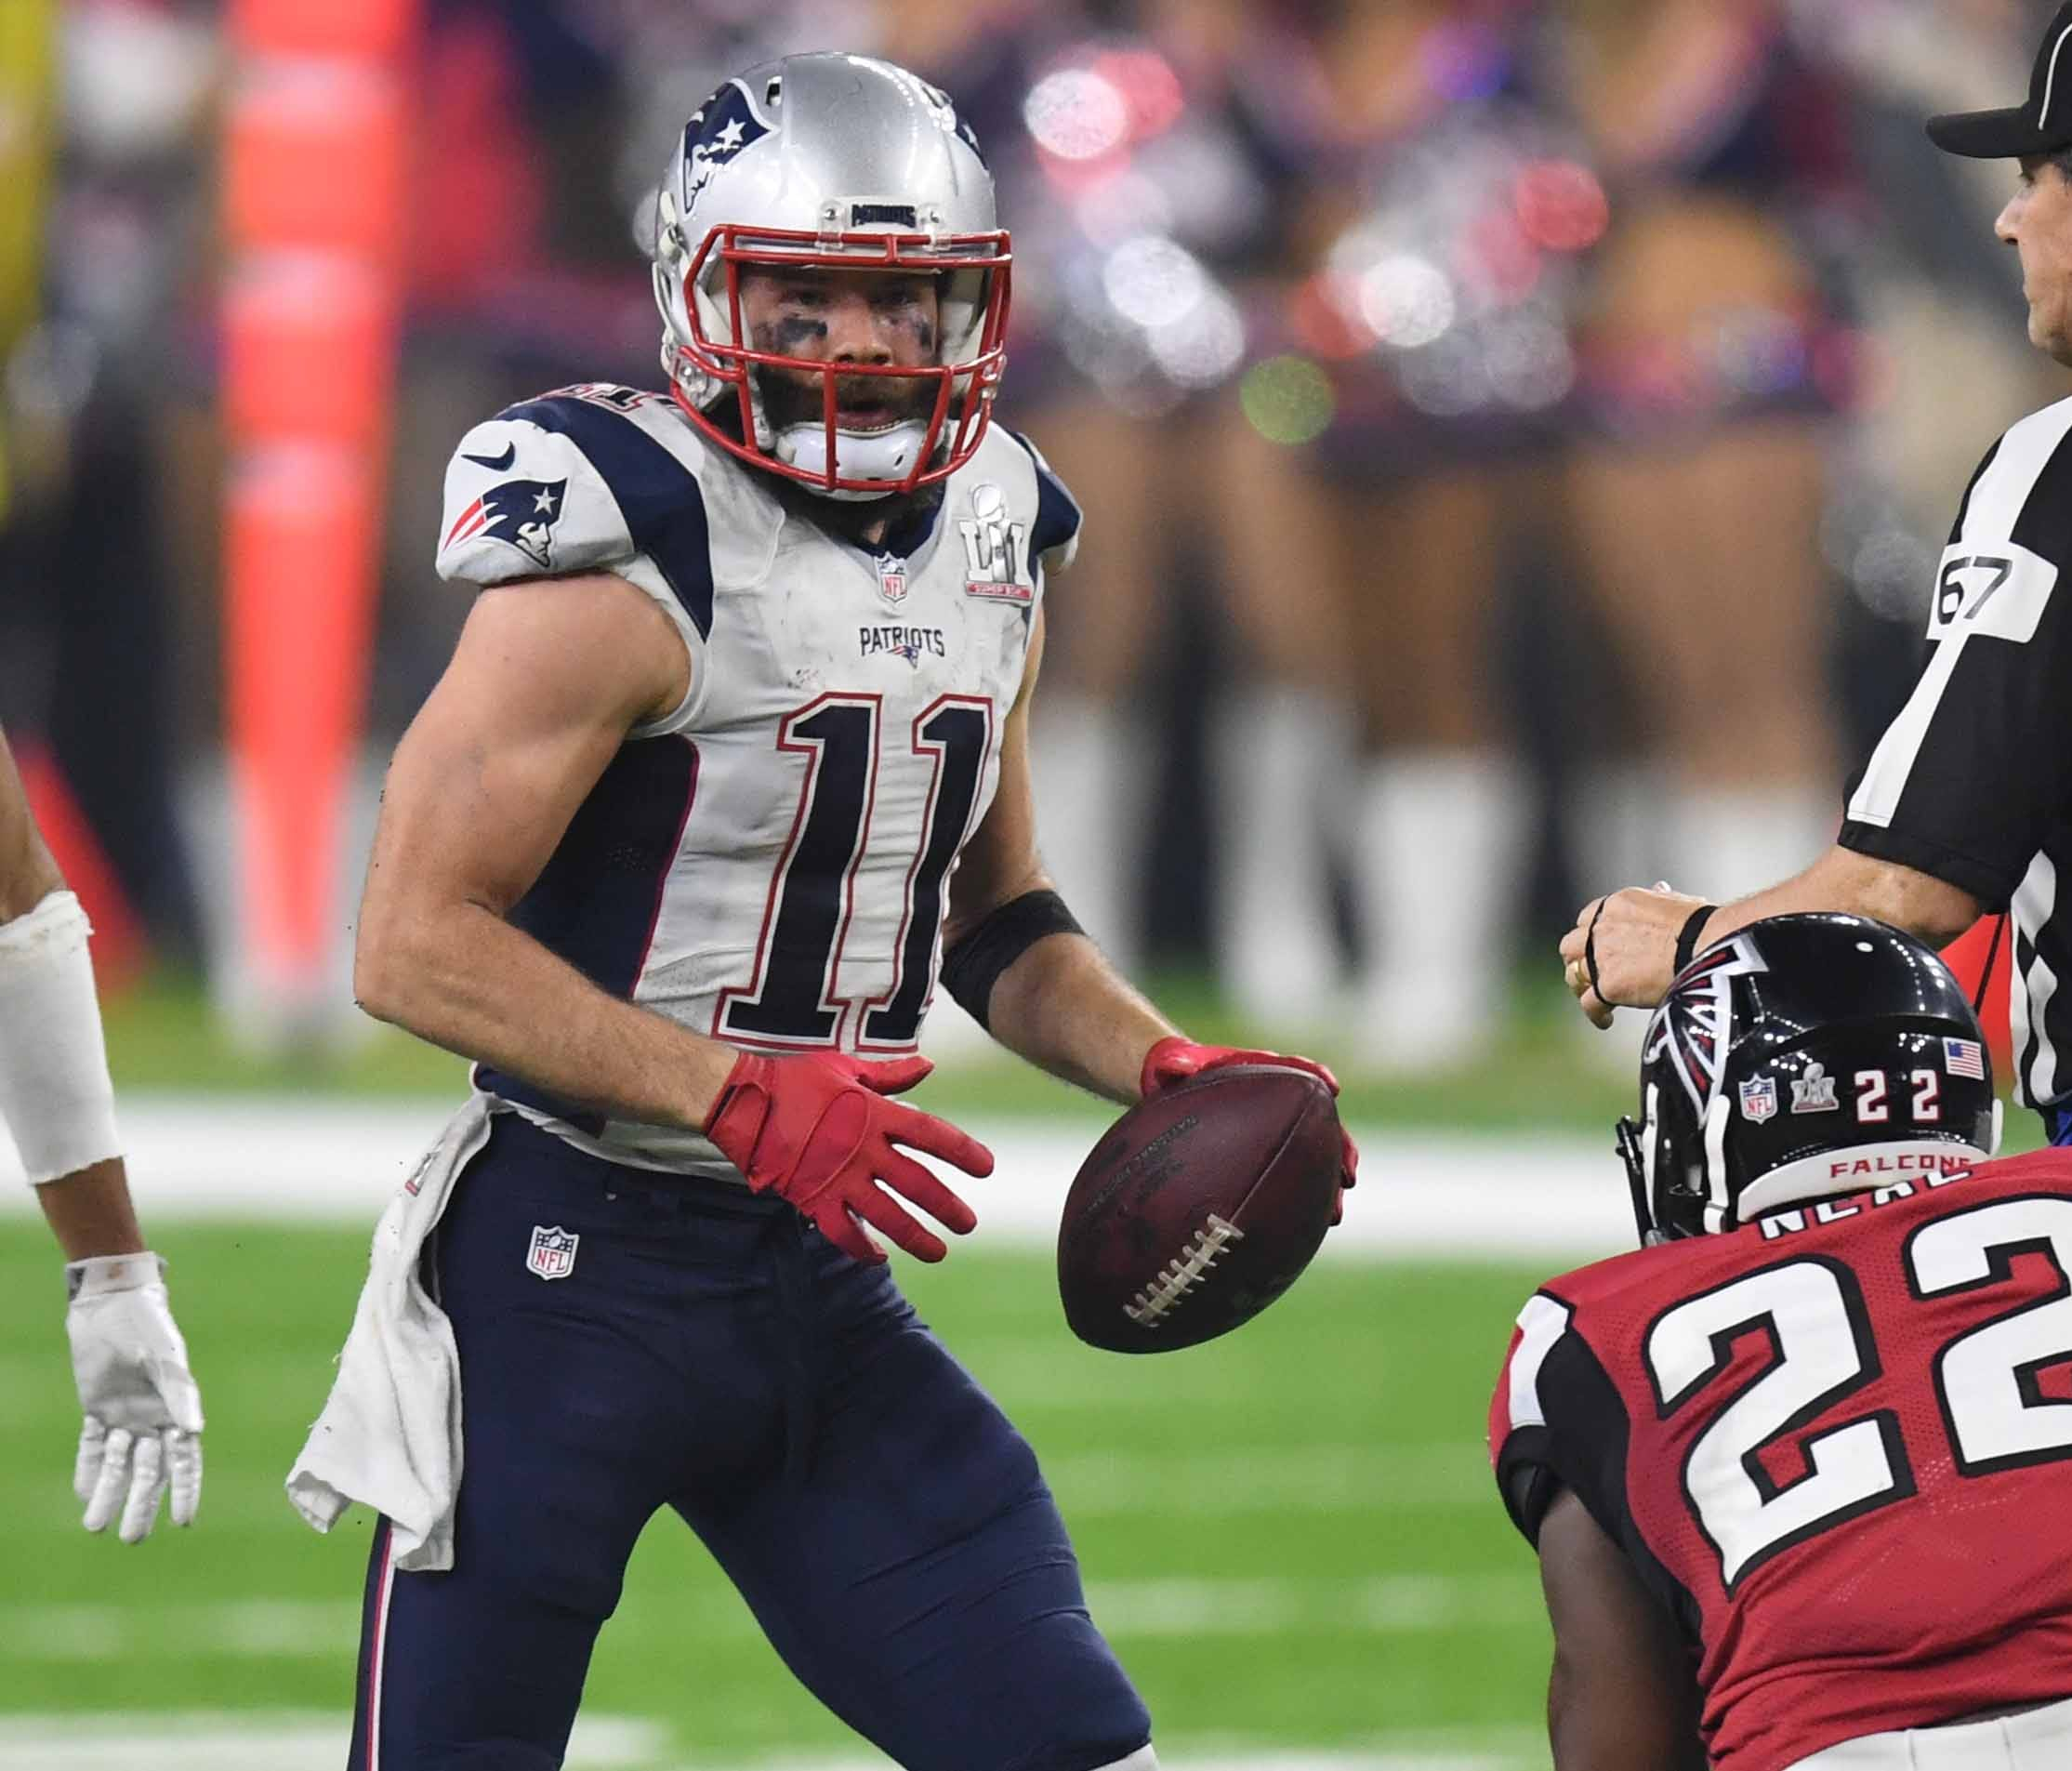 New England Patriots wide receiver Julian Edelman (11) makes a catch ahead of Atlanta Falcons strong safety Keanu Neal (22) during the fourth quarter during Super Bowl LI at NRG Stadium.